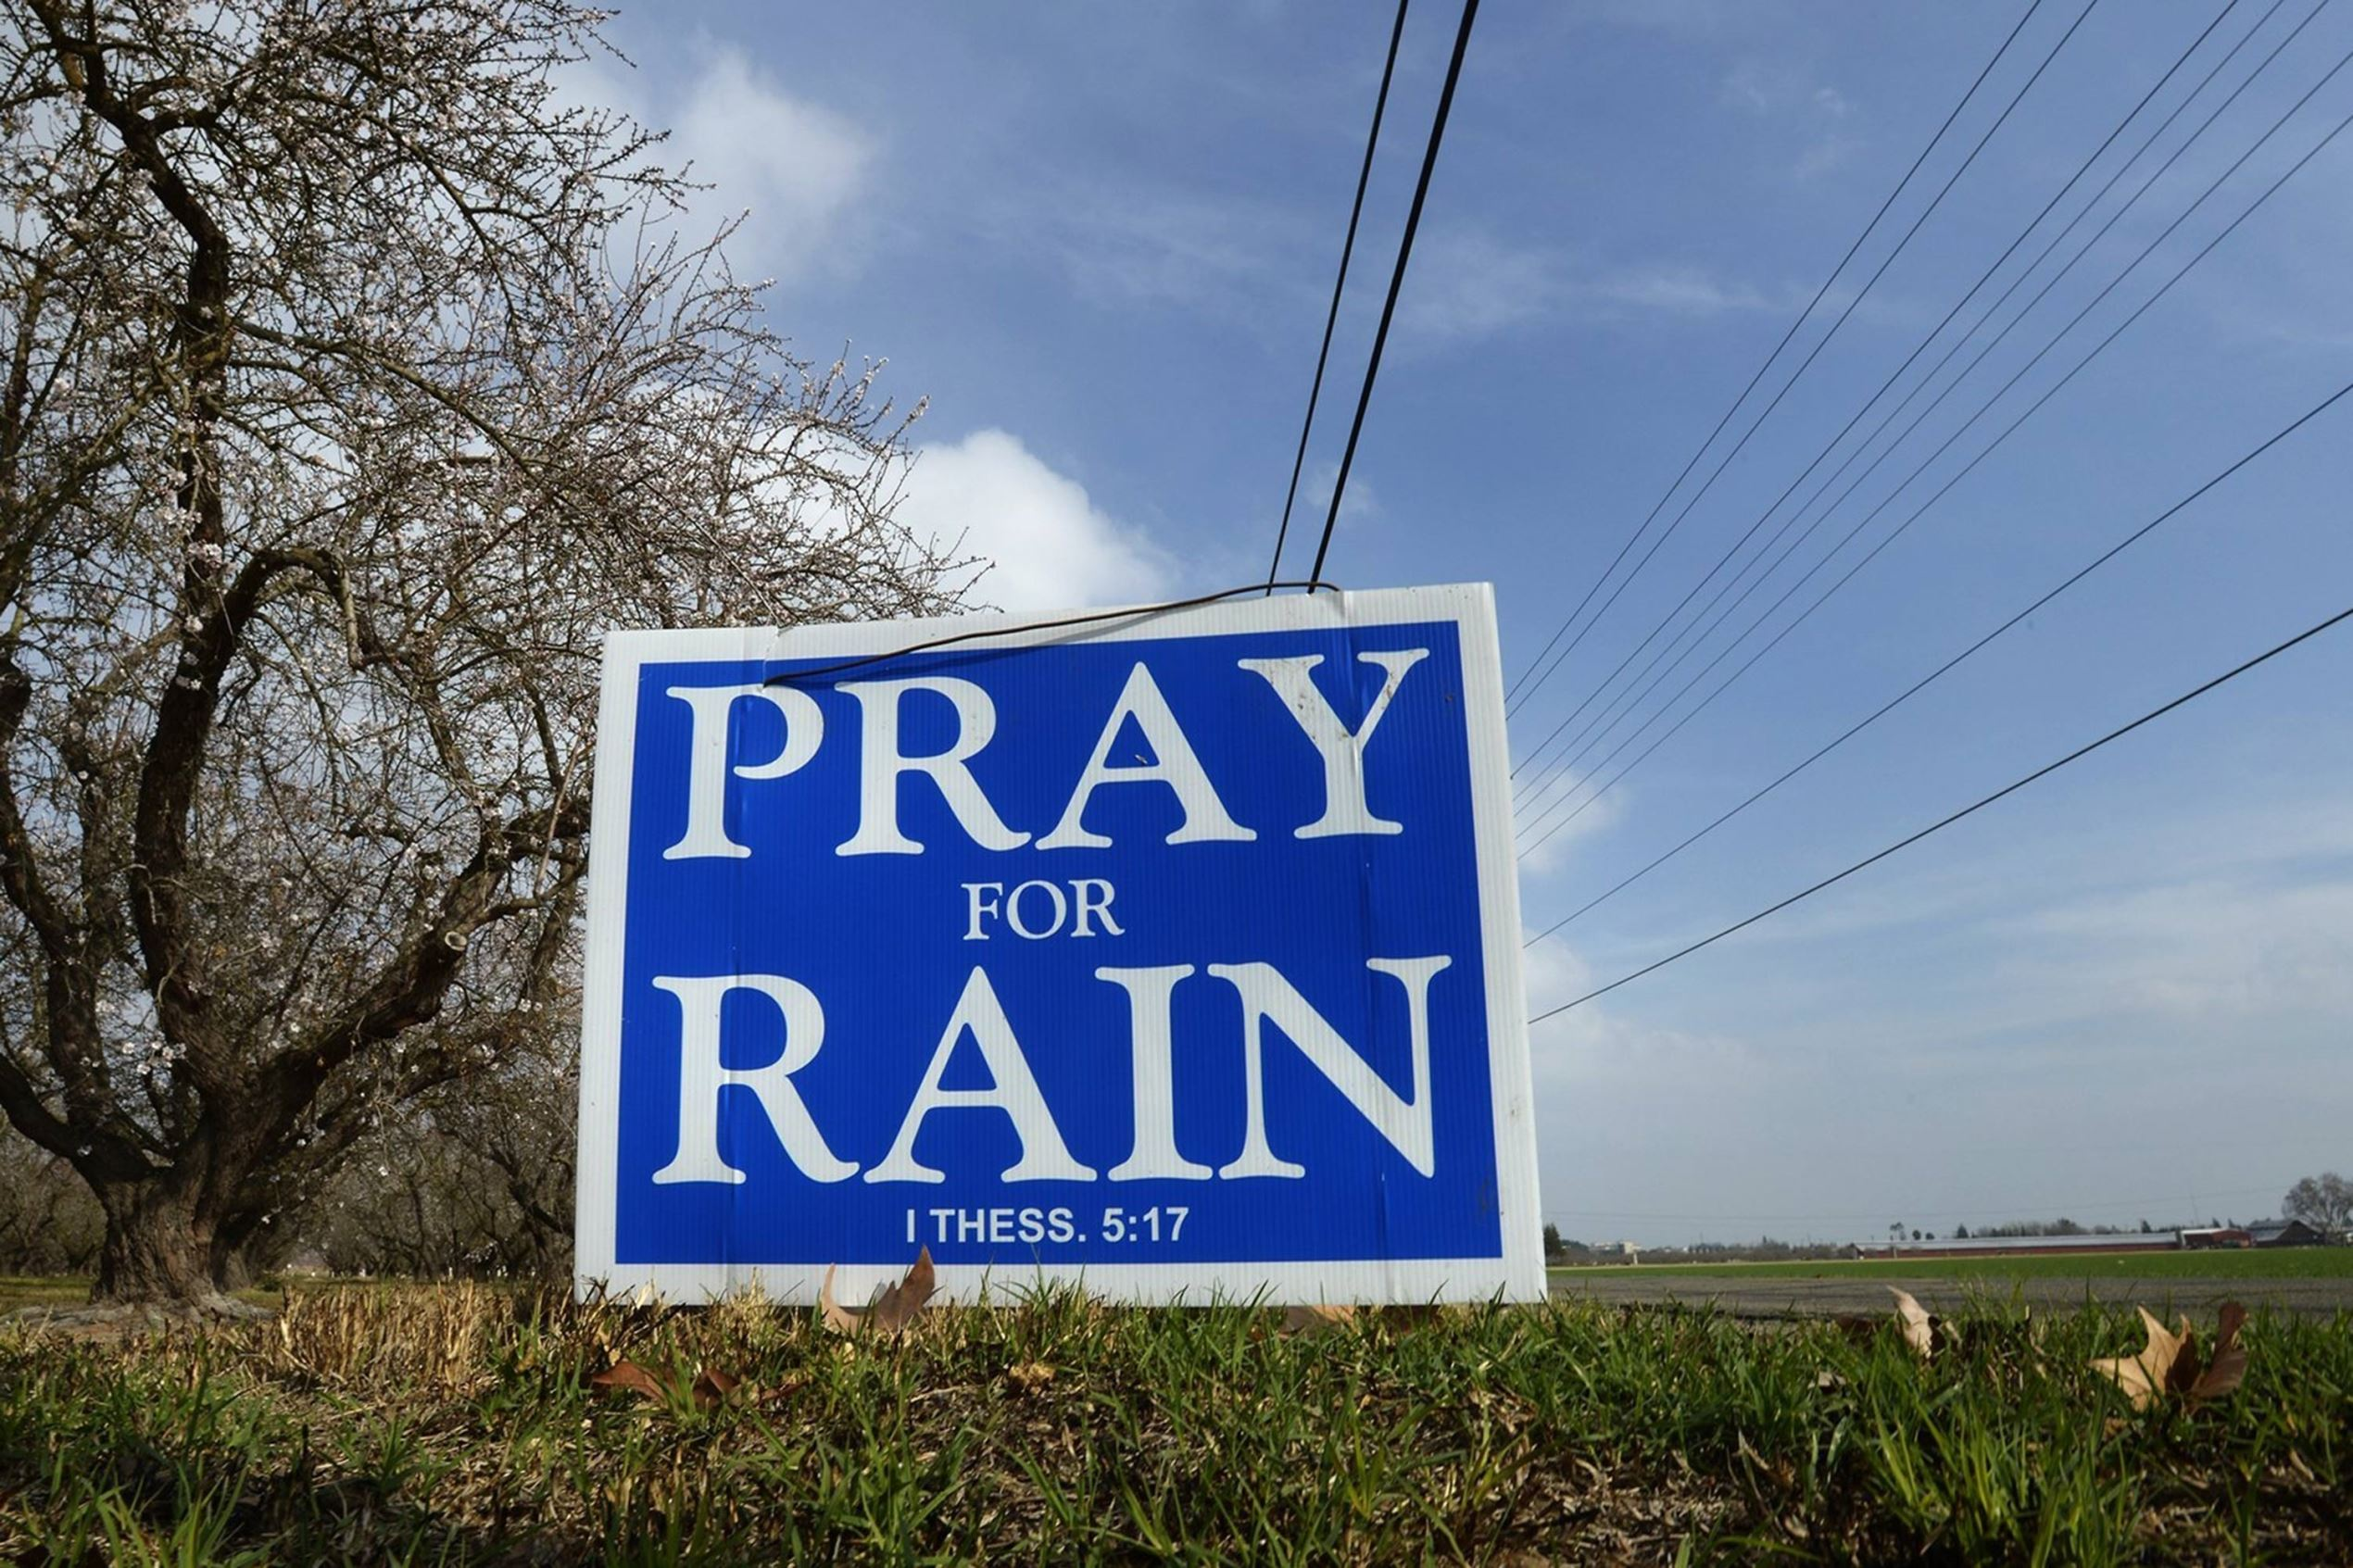 A pray for rain sign in Modesto, California, during a drought in 2014.